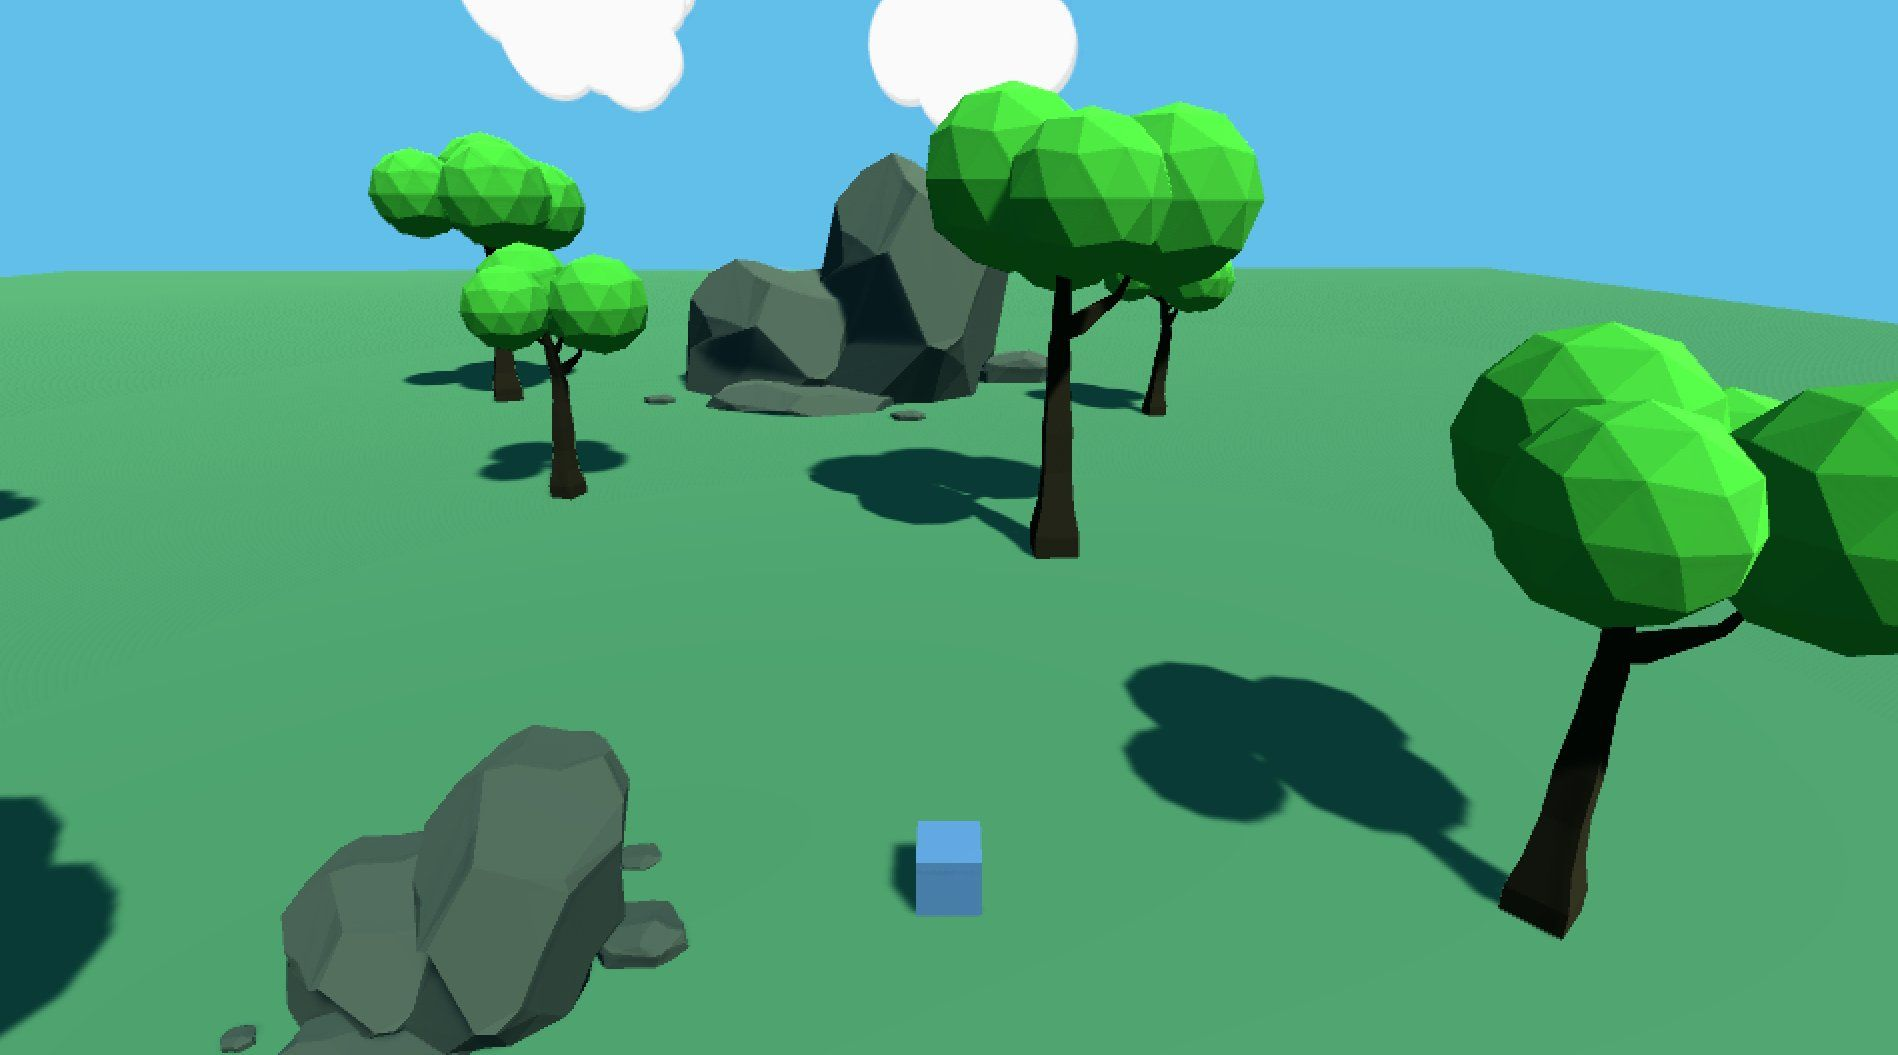 3D Action Game Progress